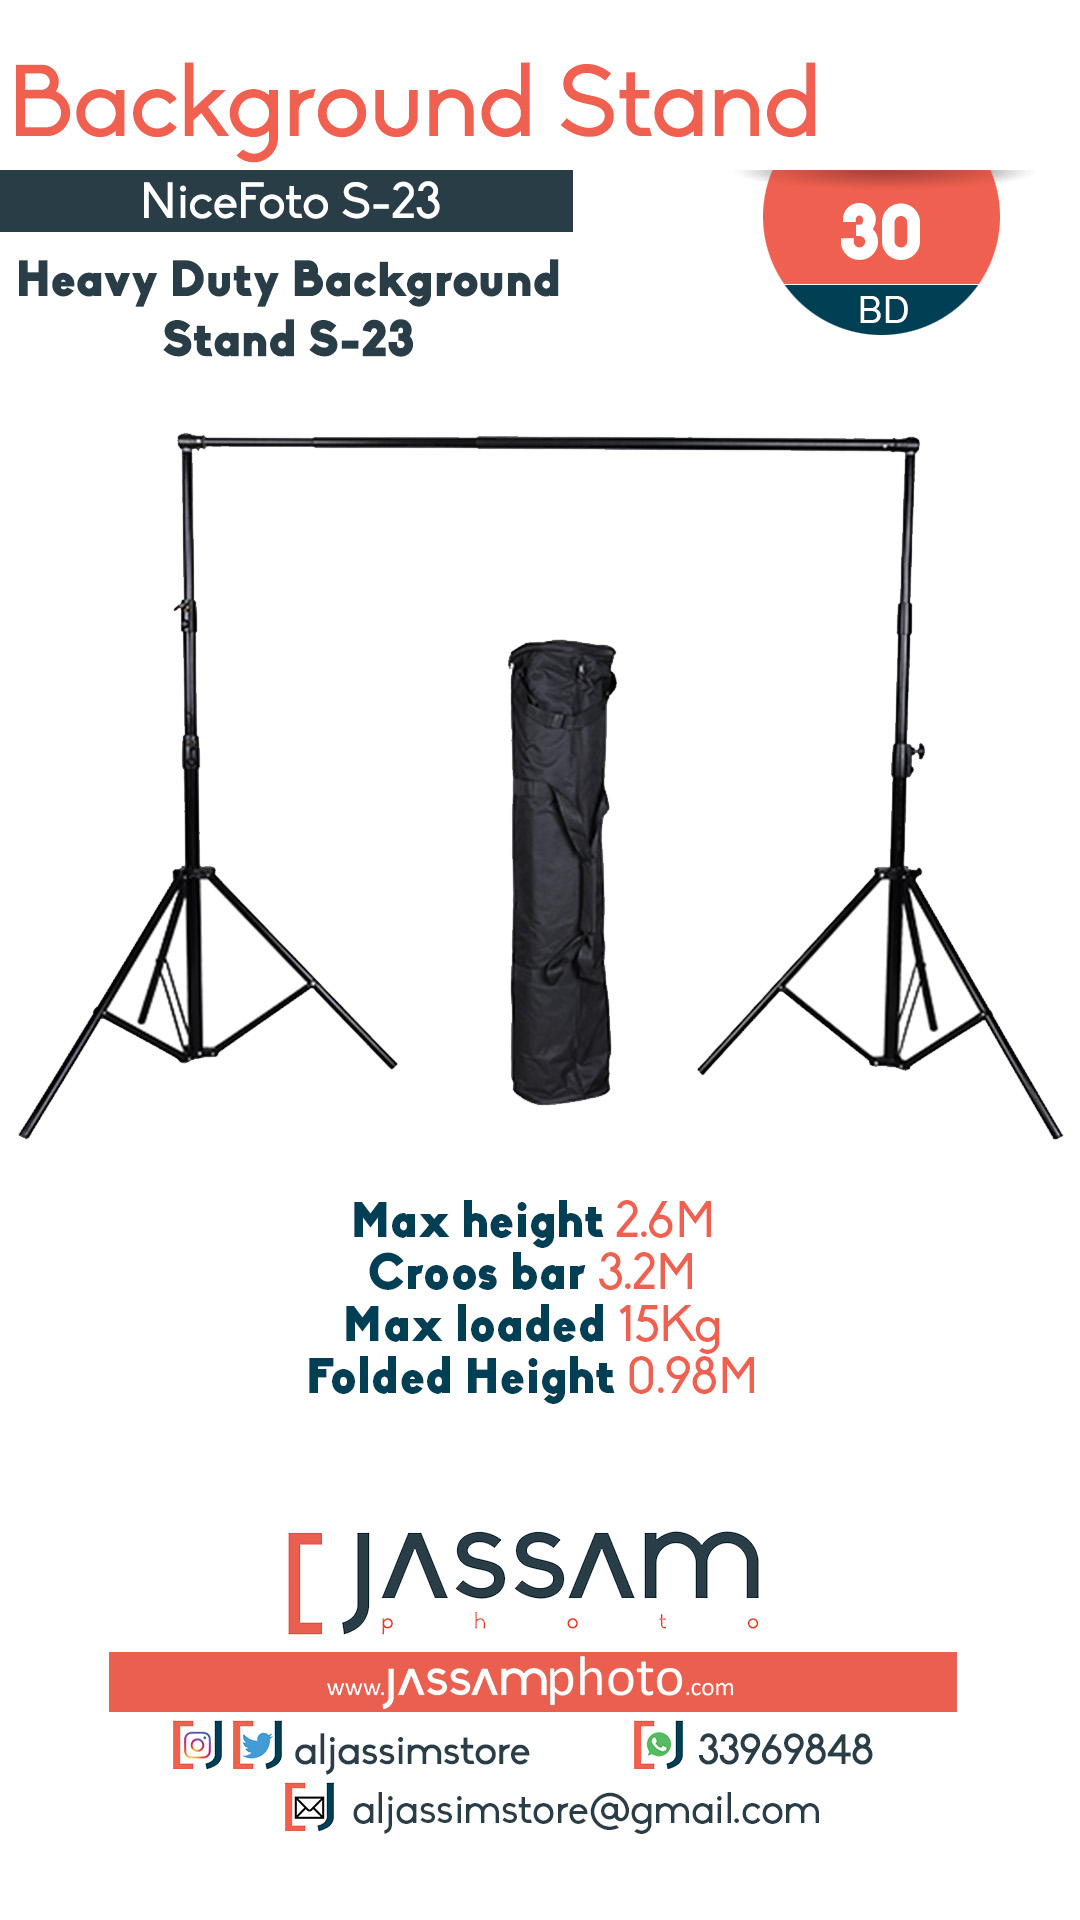 Heavy Duty Background Stand S-23